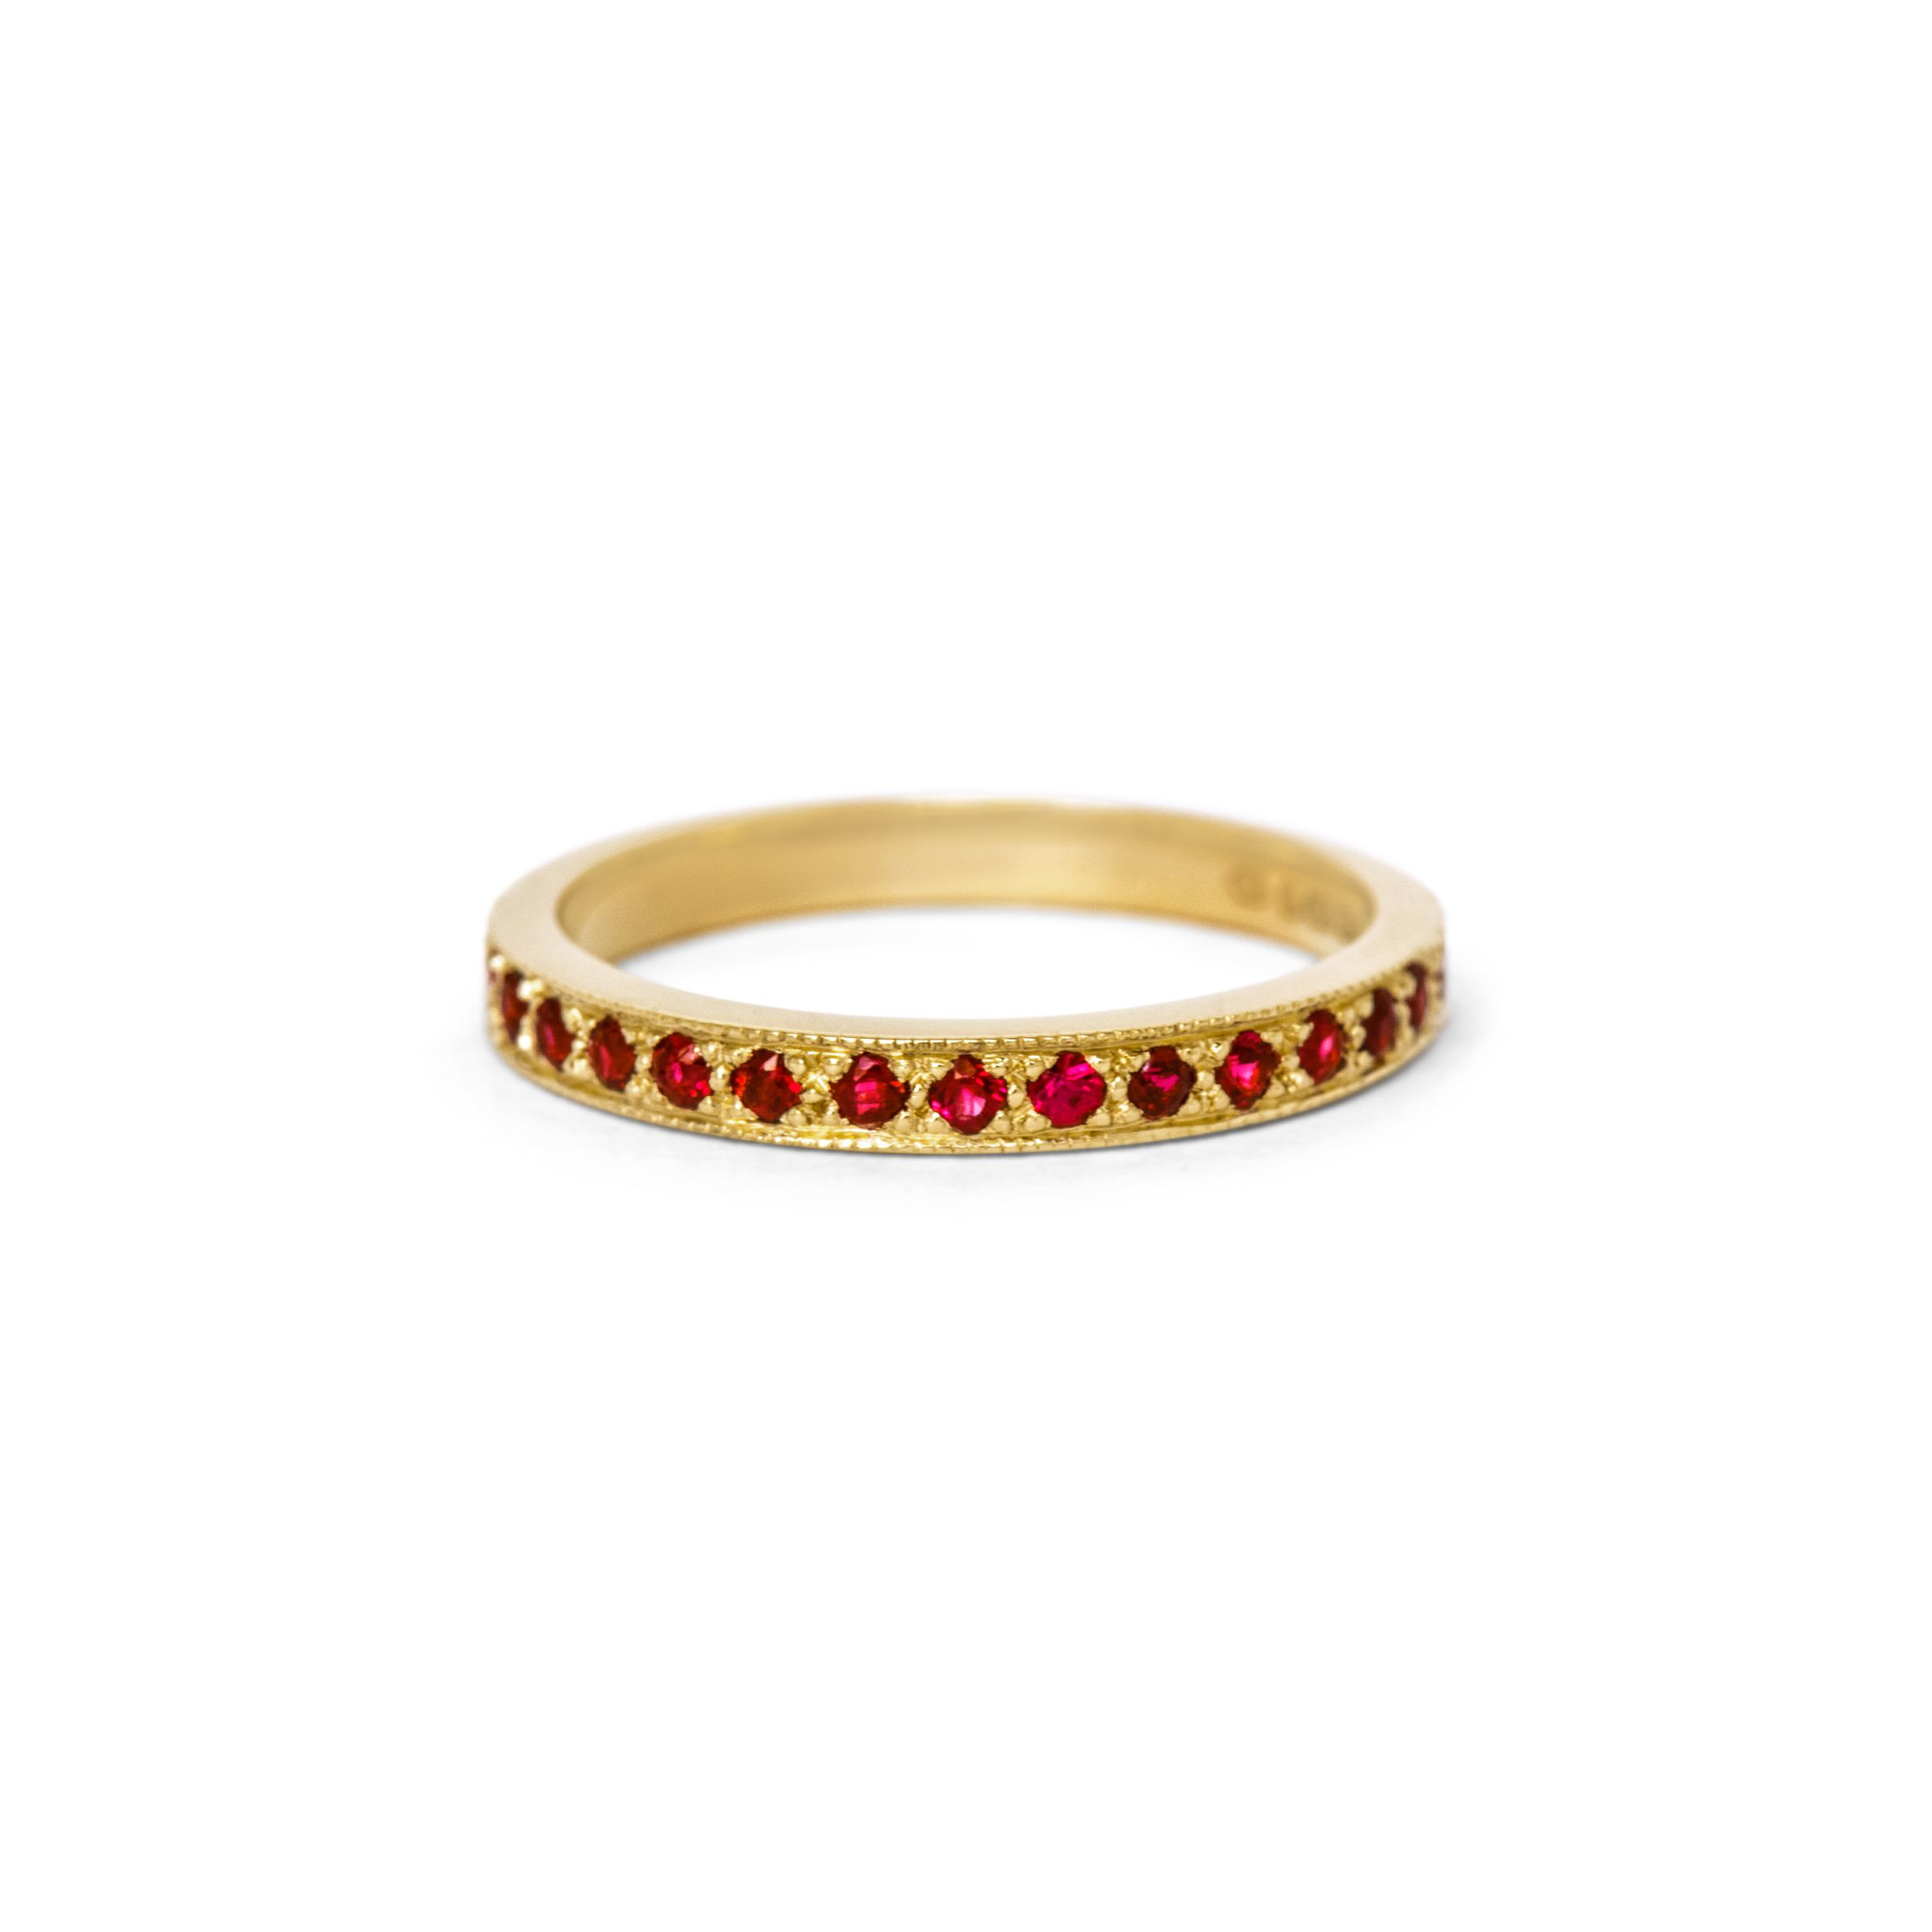 A ruby wedding anniversary gift - a delicate grain set ruby half eternity ring in 18 carat yellow gold.